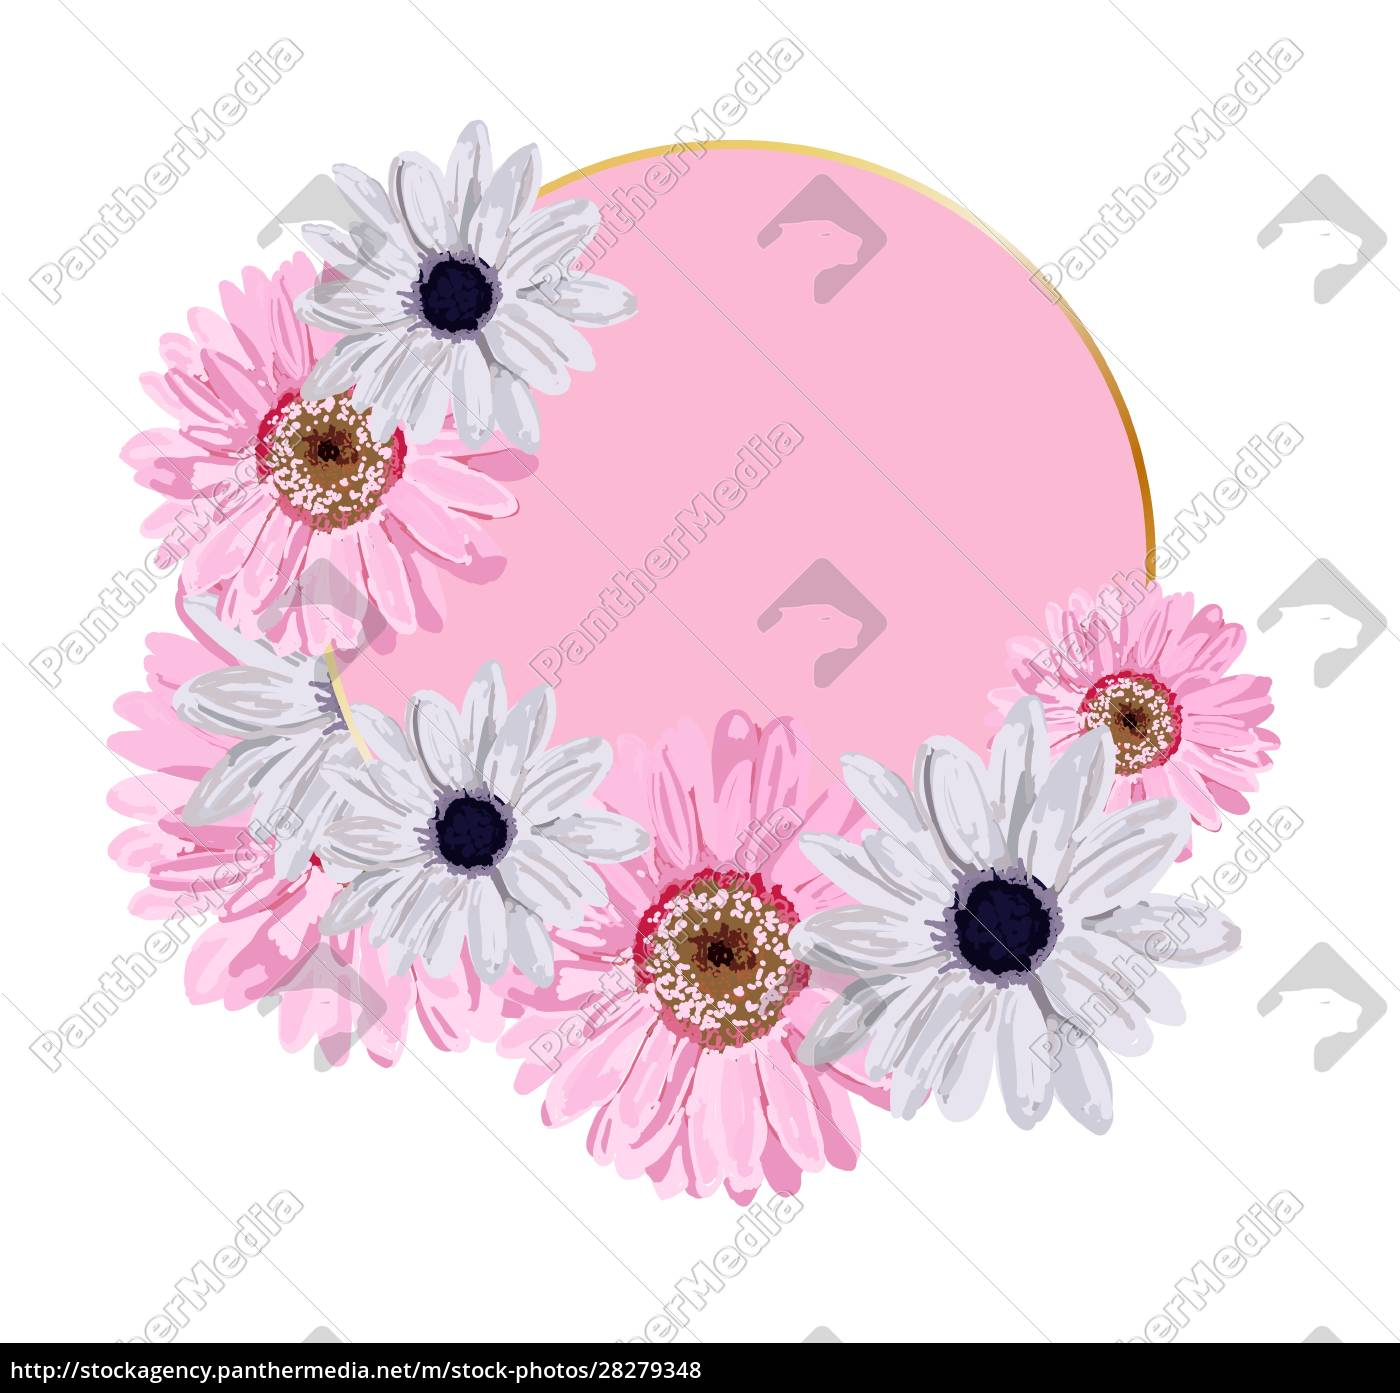 vector, round, background, for, lettering., pink - 28279348